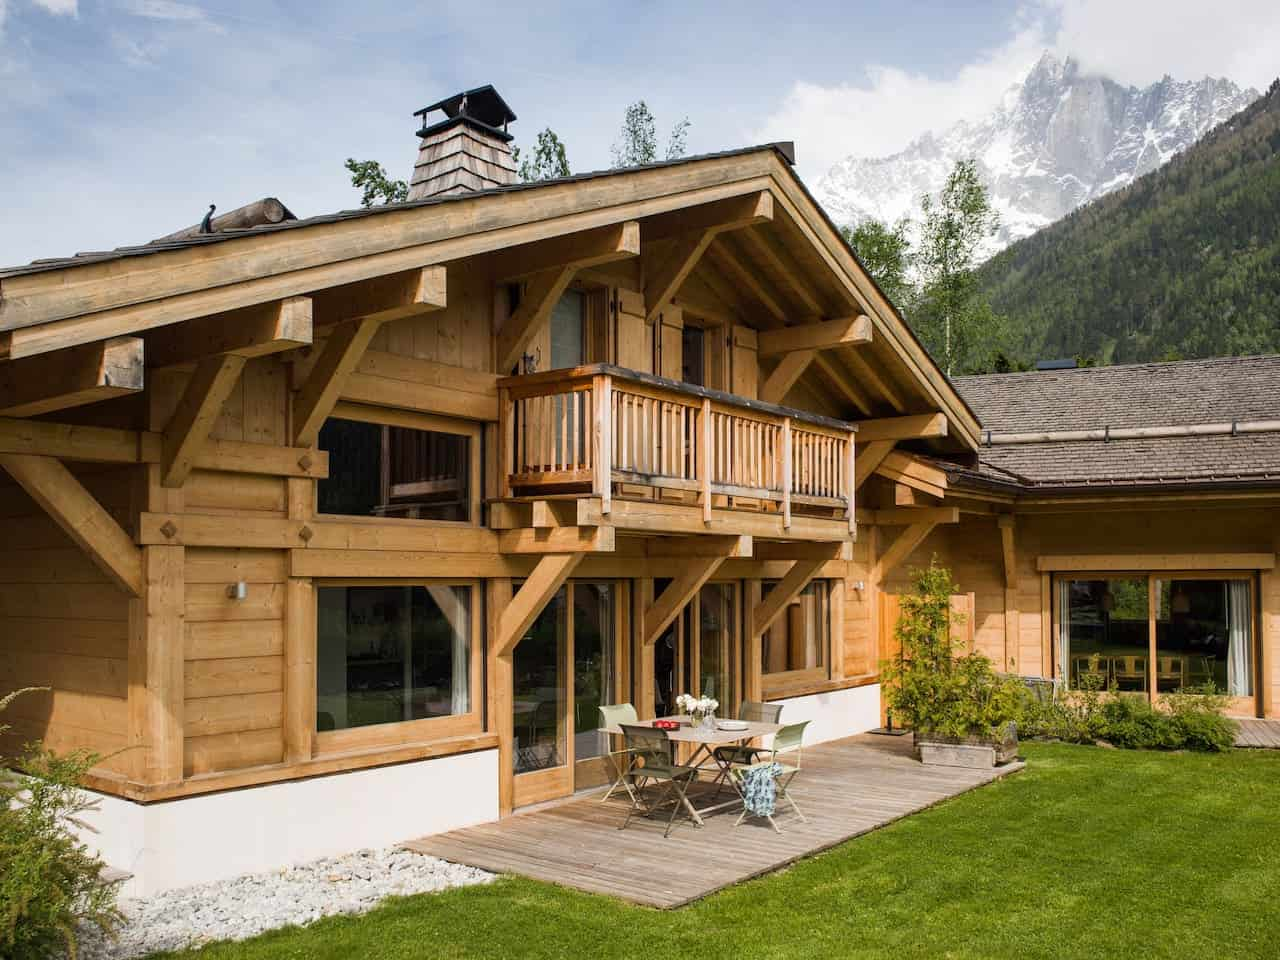 Image of Airbnb rental in Chamonix, France